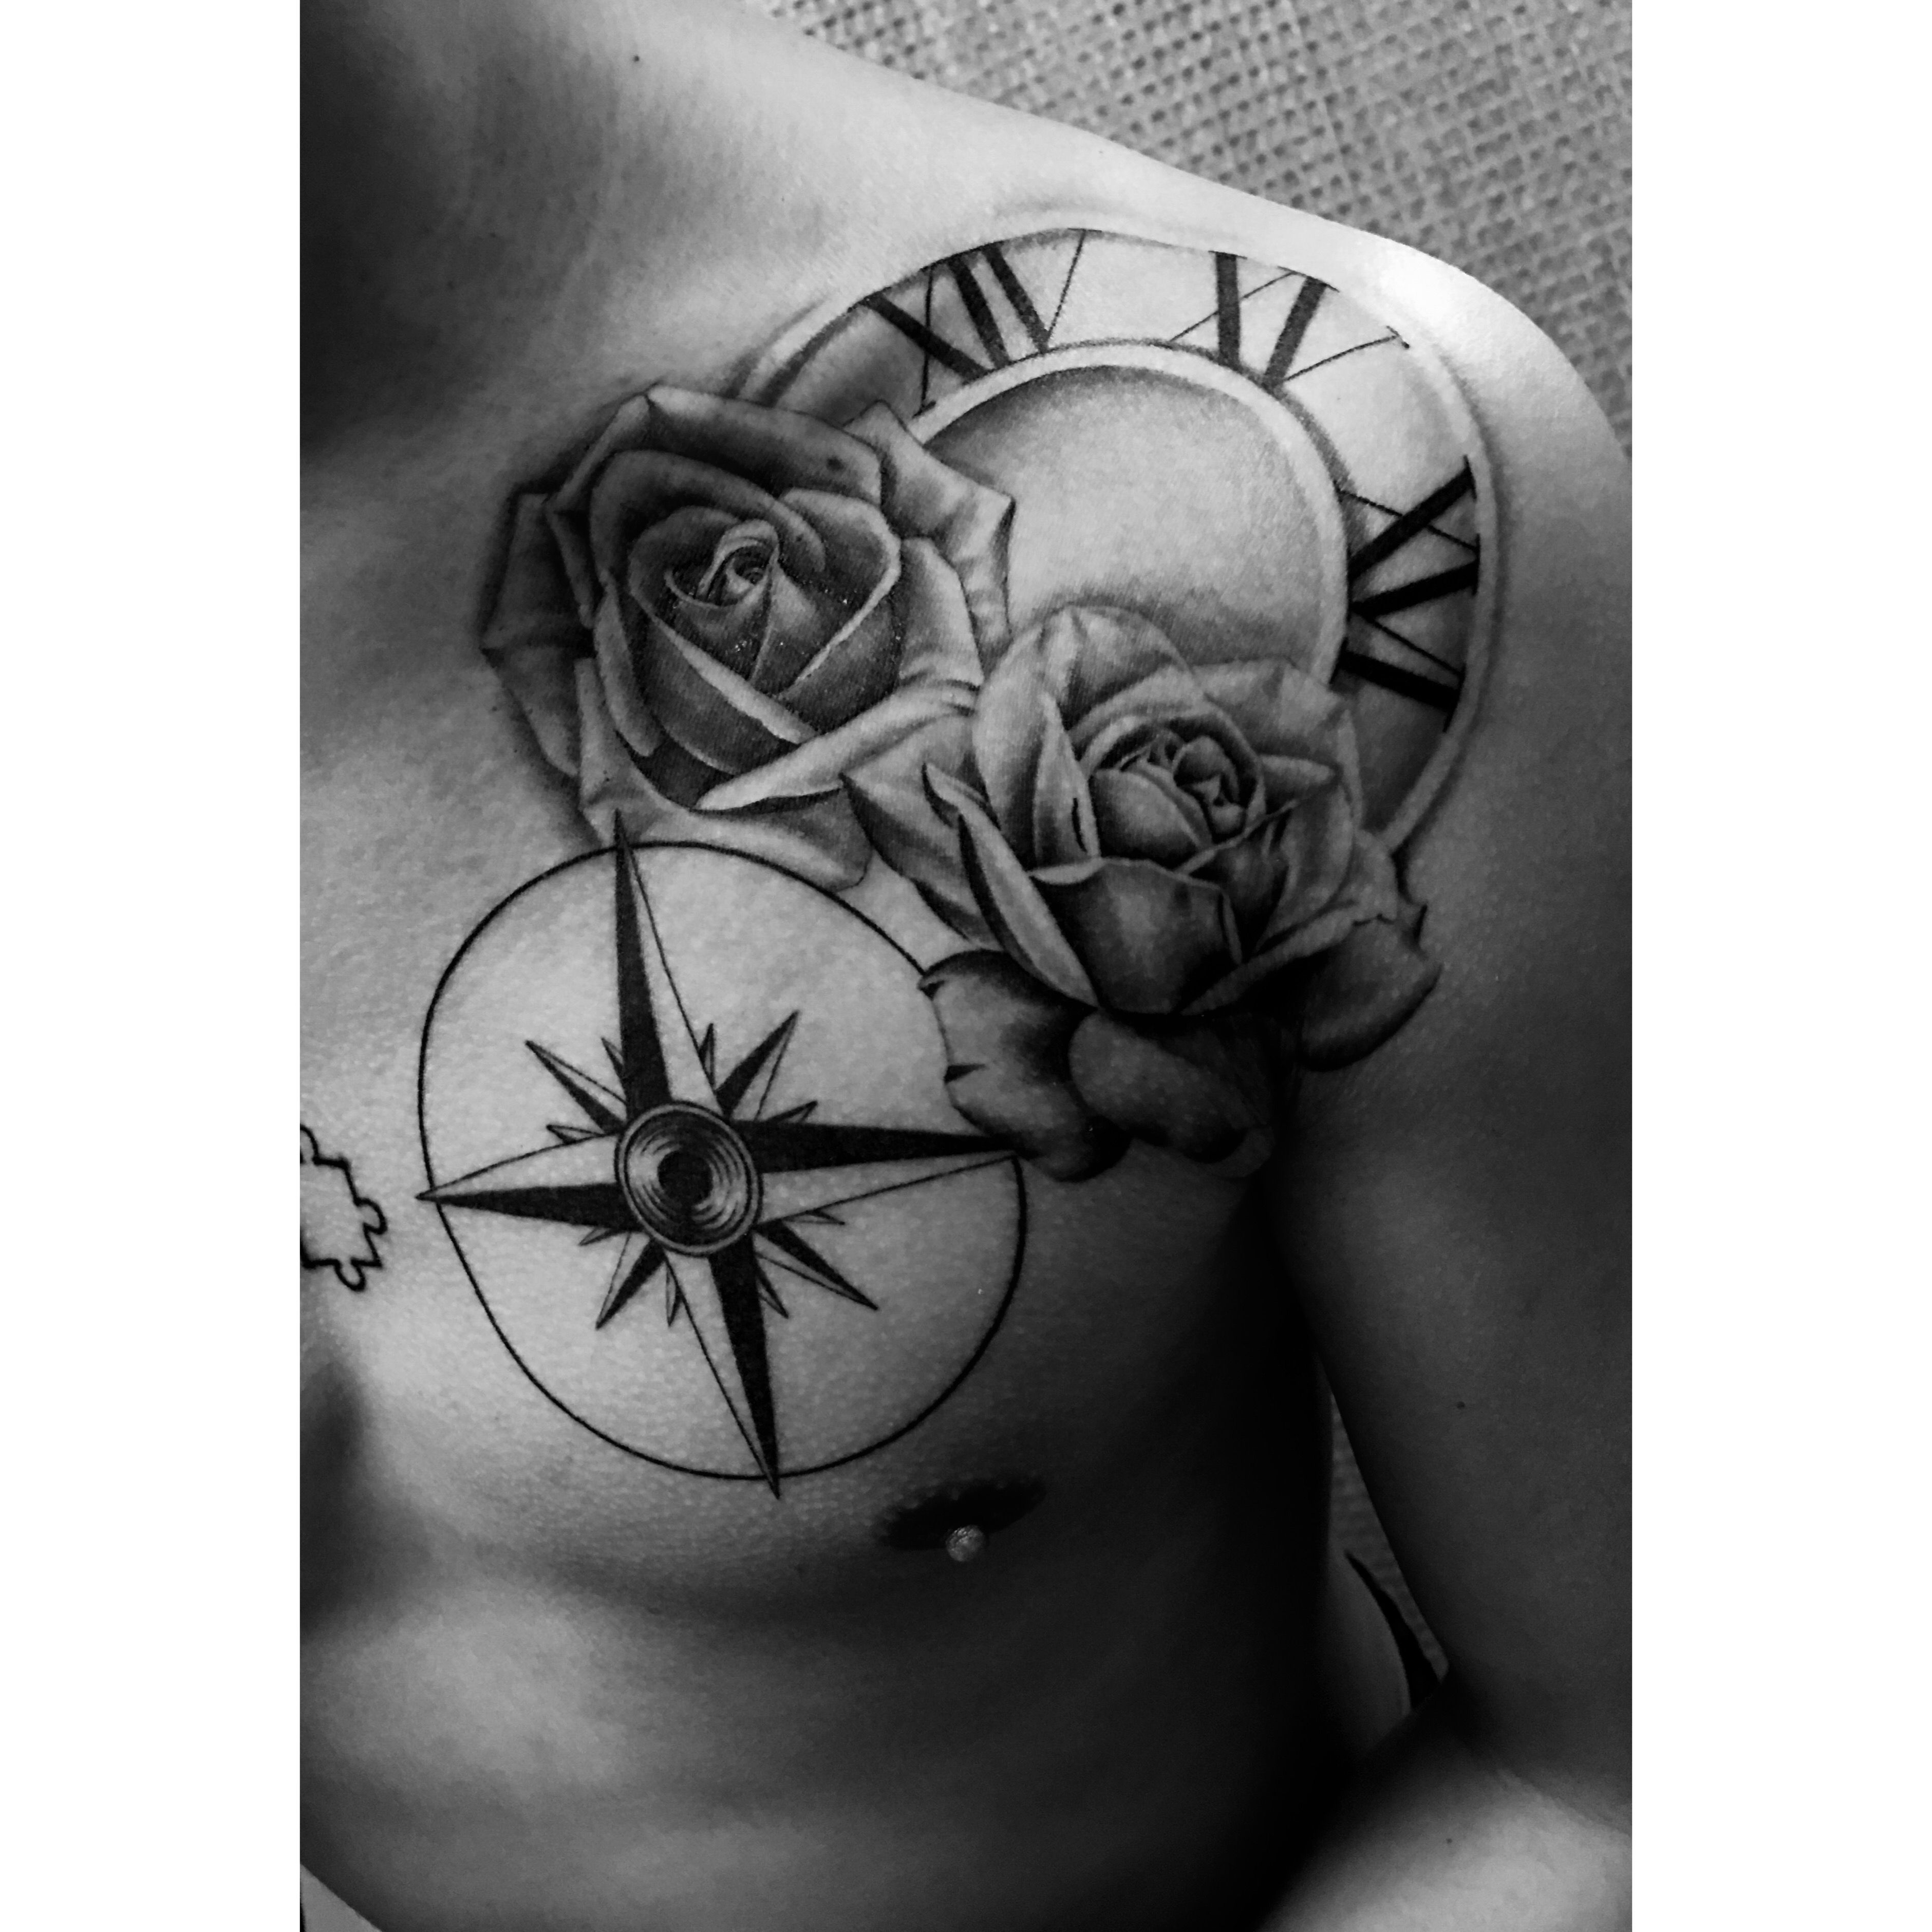 Tattoo Of Compass Roses With Roman Numeral Years On Clock Design On Shoulder And Chest Next To Puzzle Piece Https Rose Tattoos Rose Chest Tattoo Tattoos